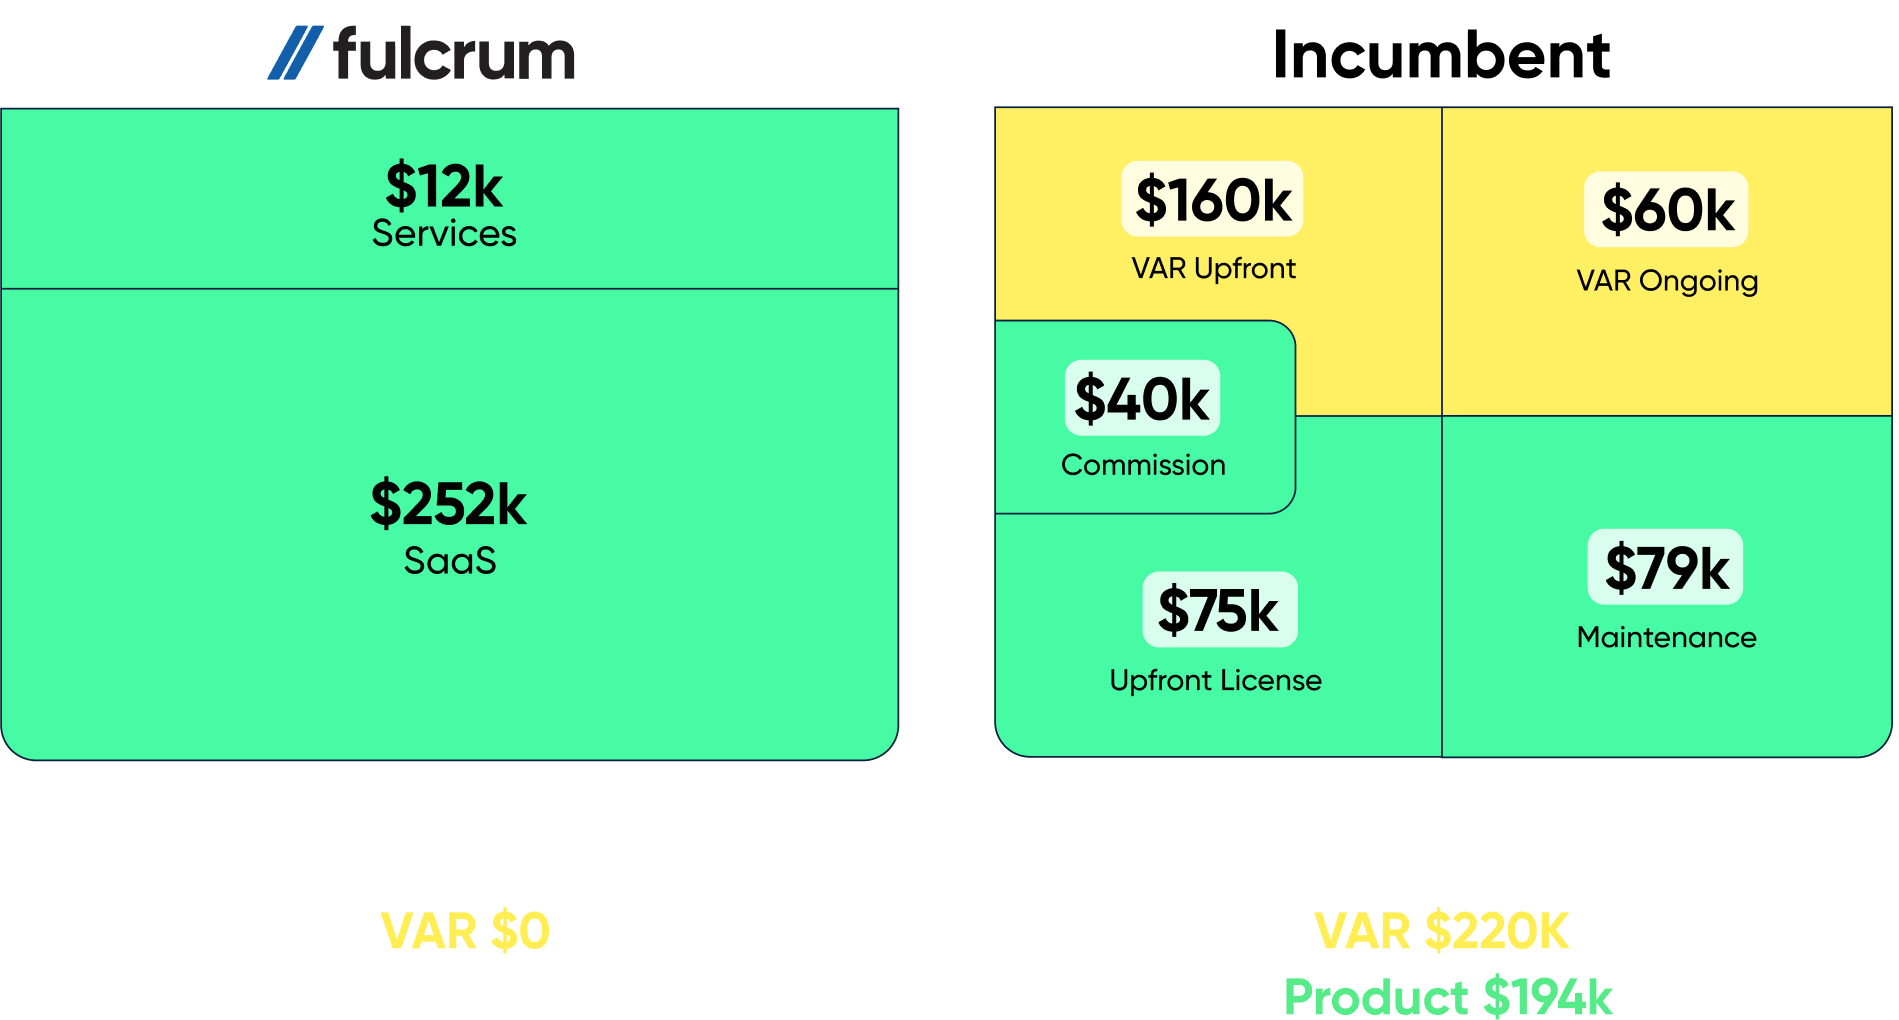 fulcurm cost of ownership example